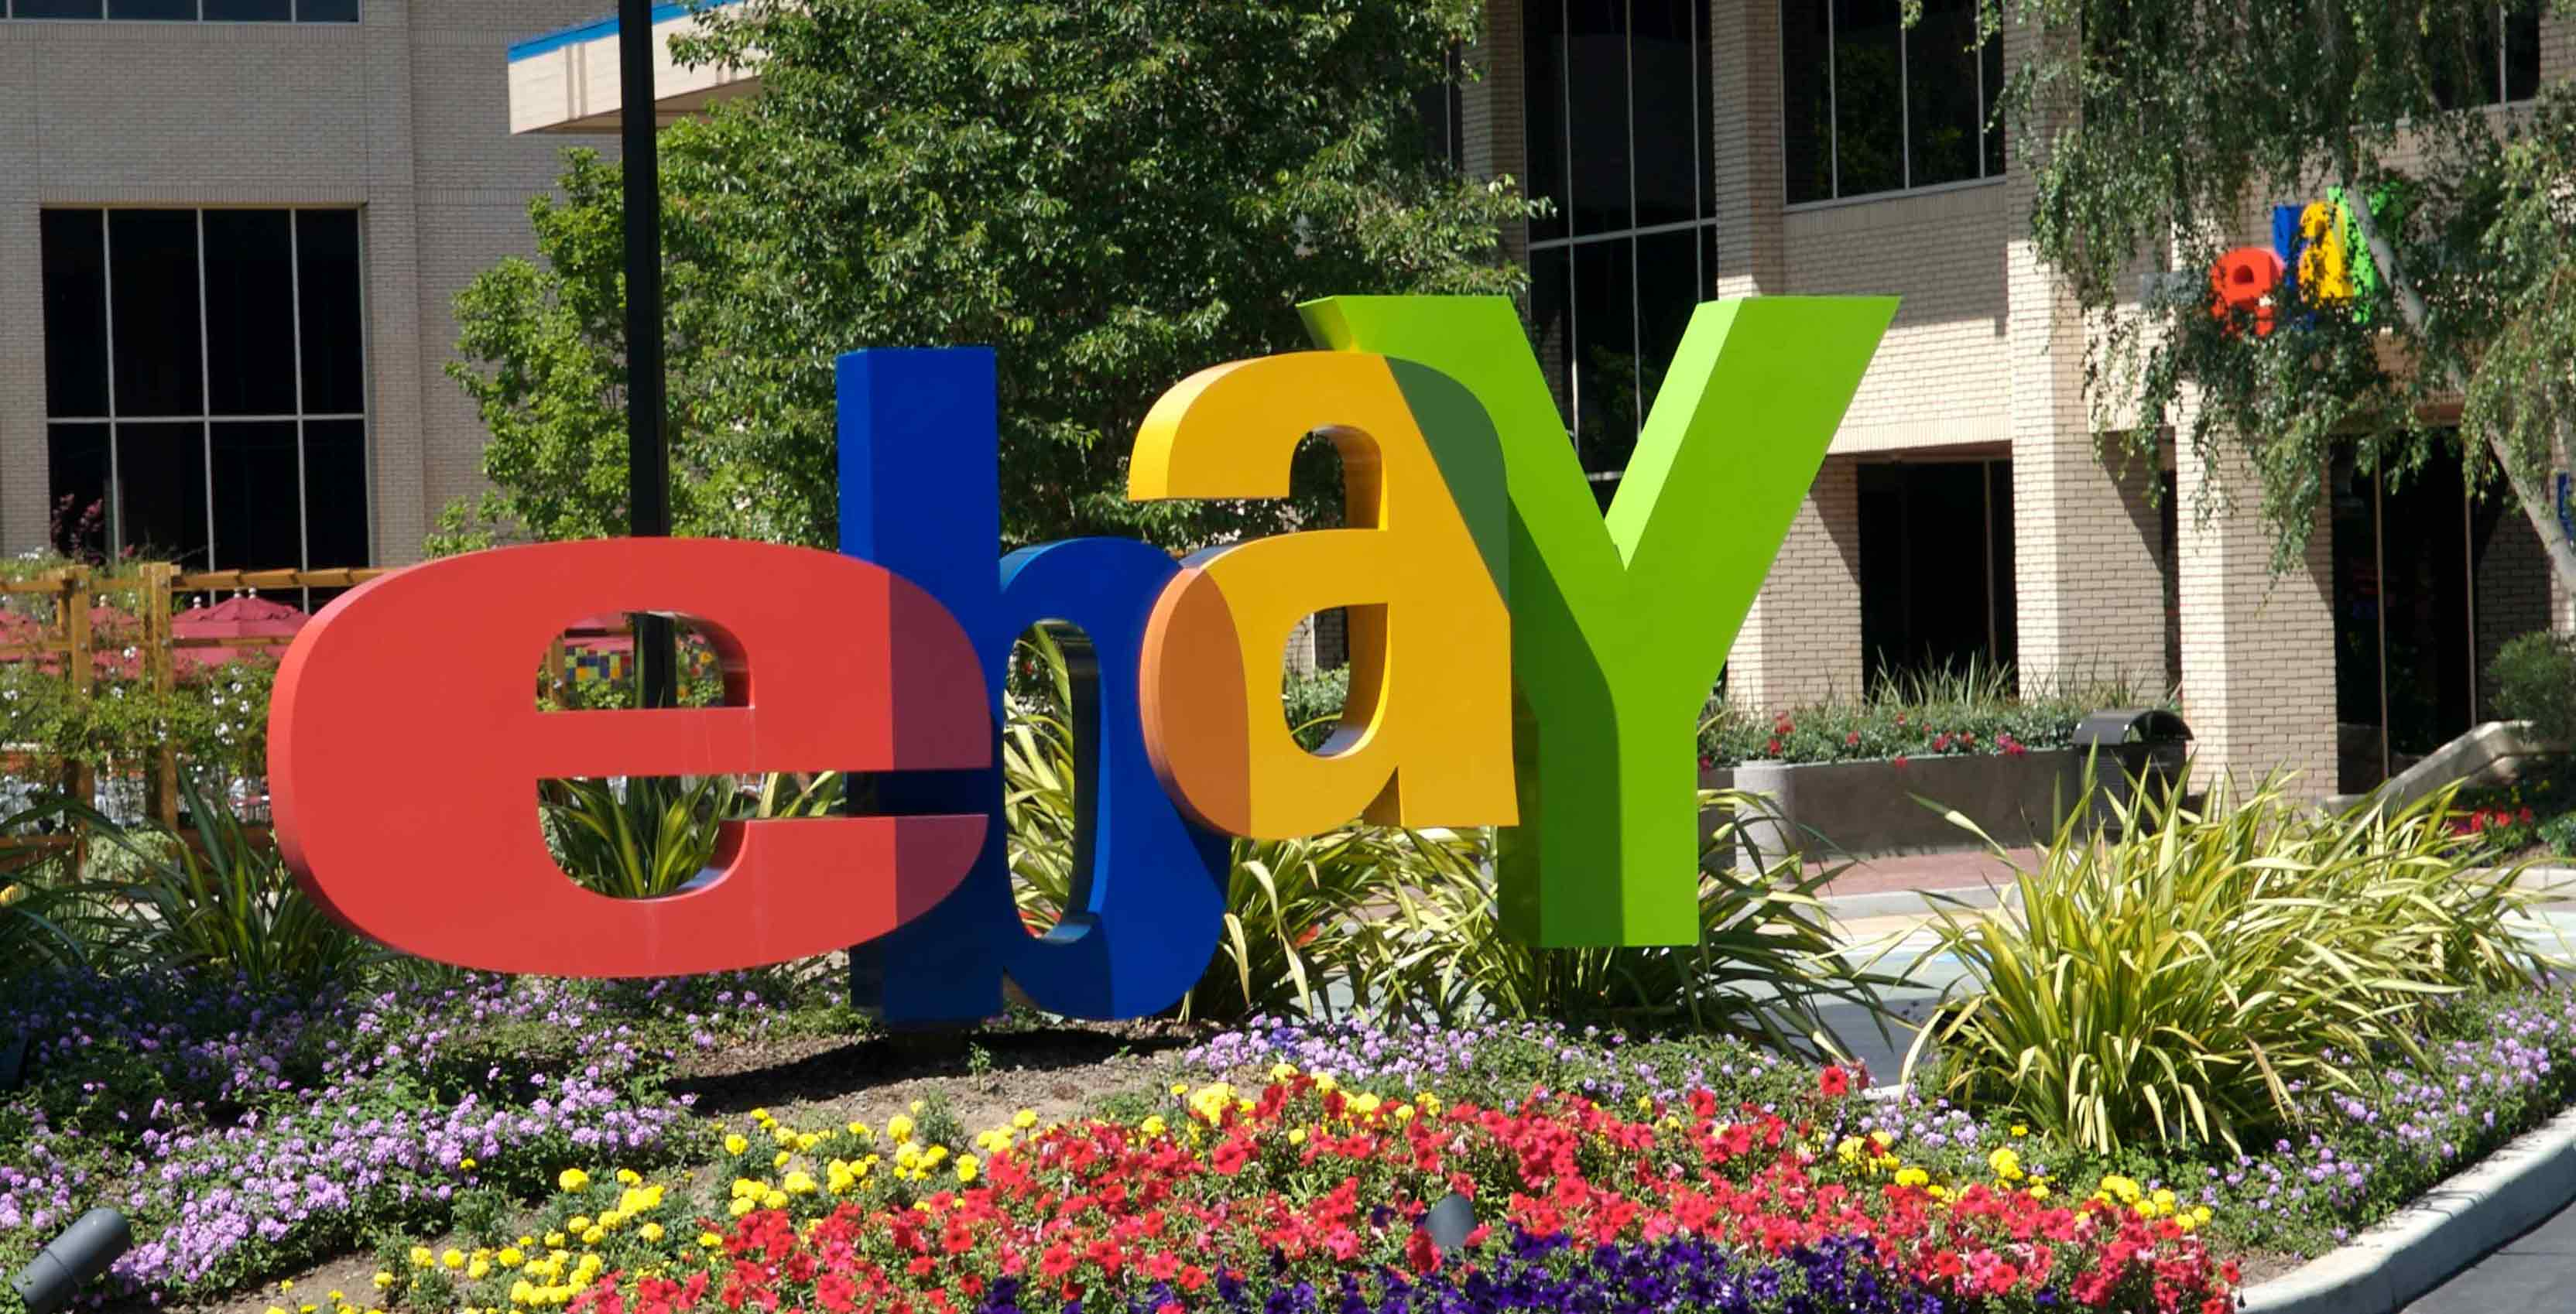 Ebay Canada Offering 10 Percent Off Products Site Wide Today